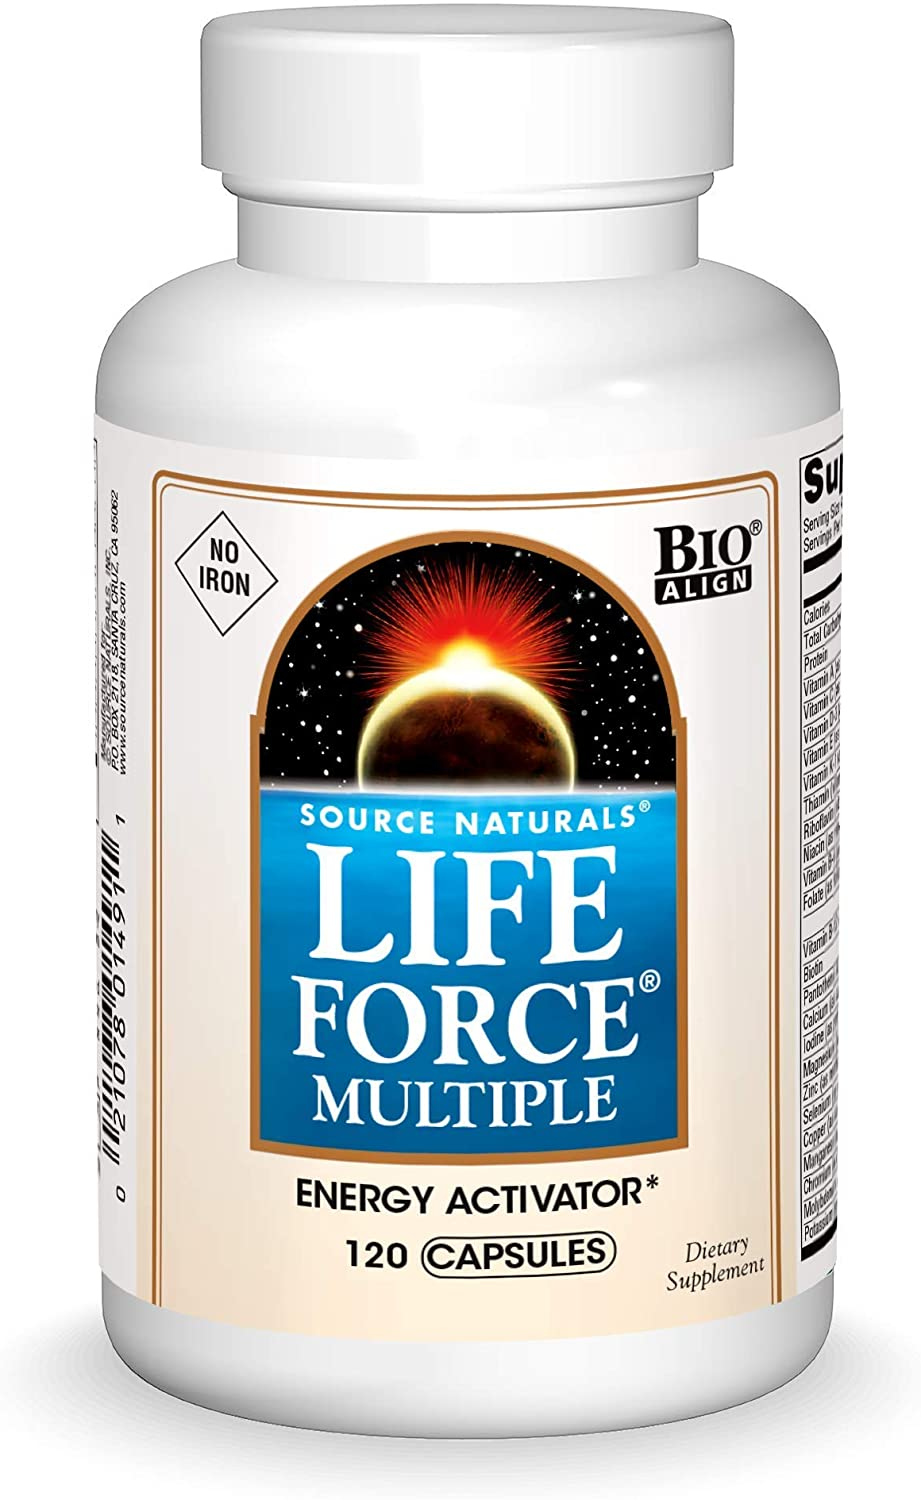 Source Natural Life Force Multiple - NO Iron - Energy Activator - 120 Capsules